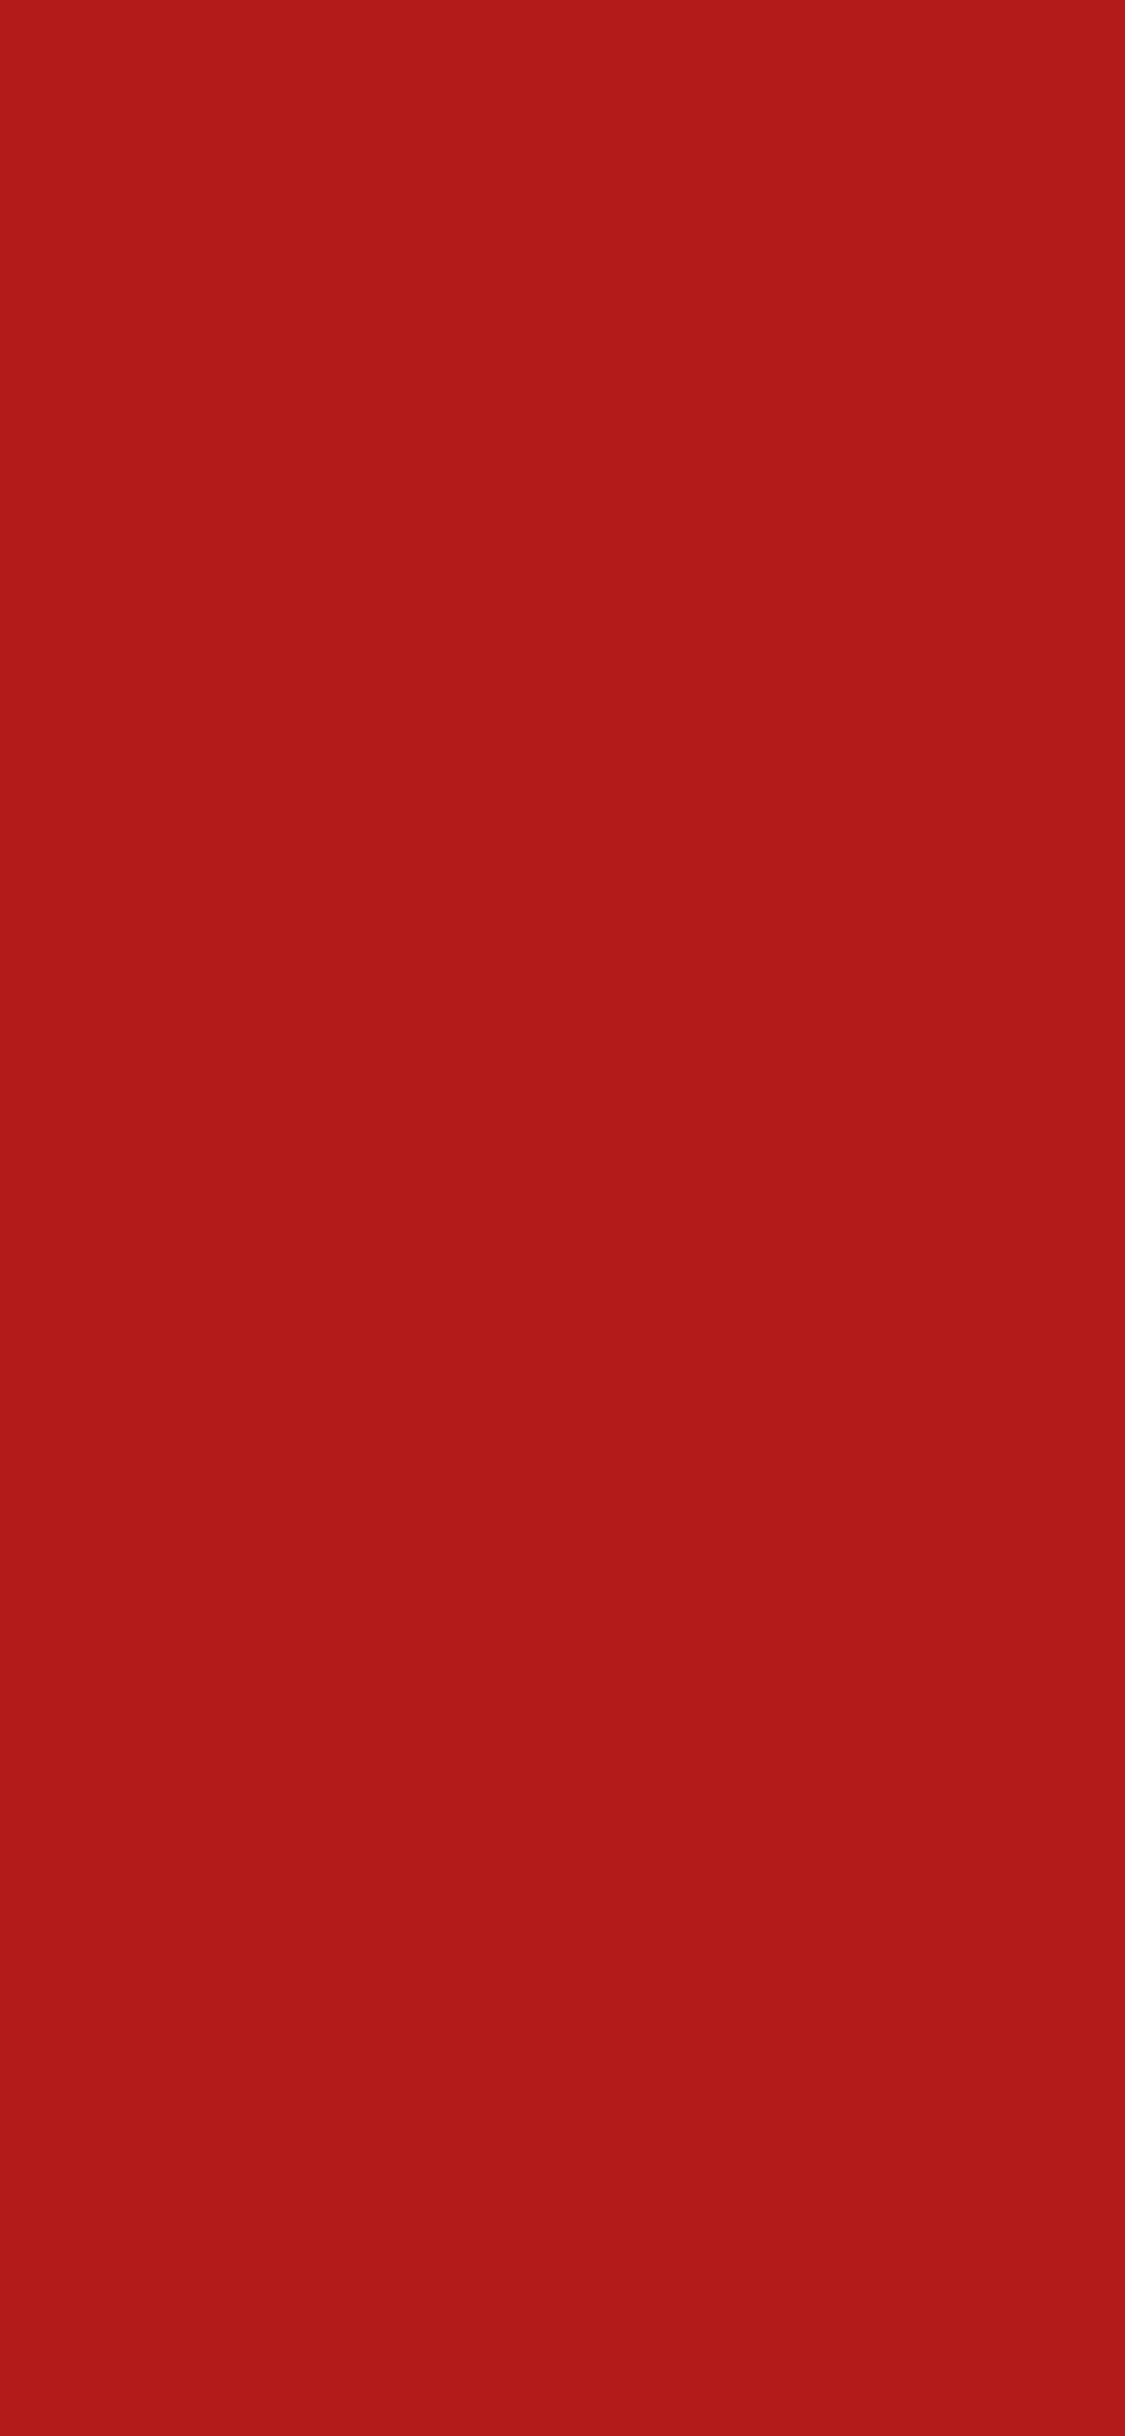 1125x2436 Cornell Red Solid Color Background